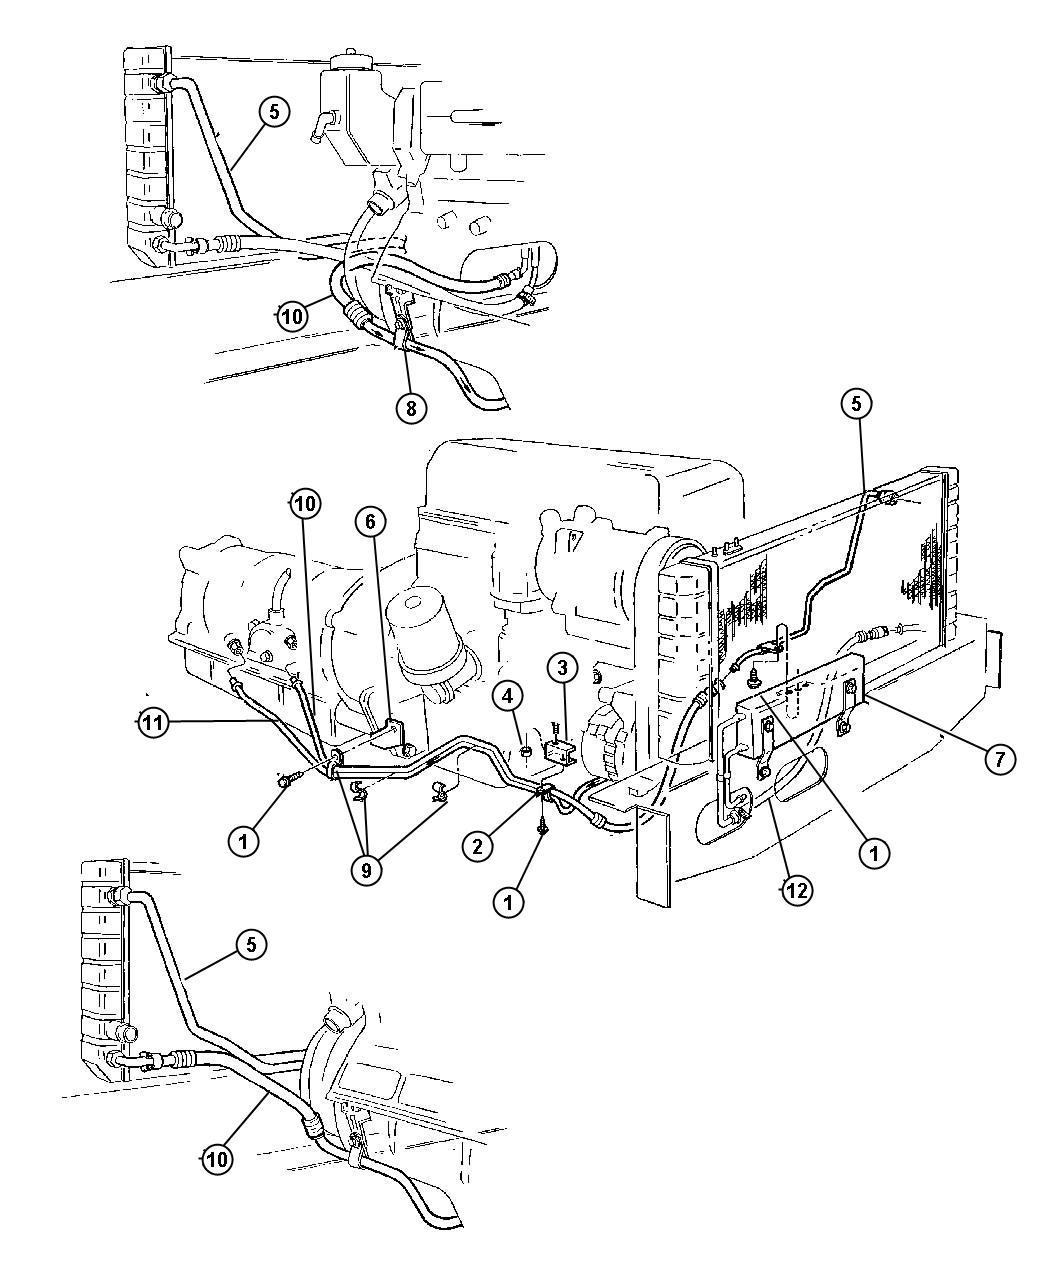 jeep wrangler 4wd transmission diagram  jeep  free engine